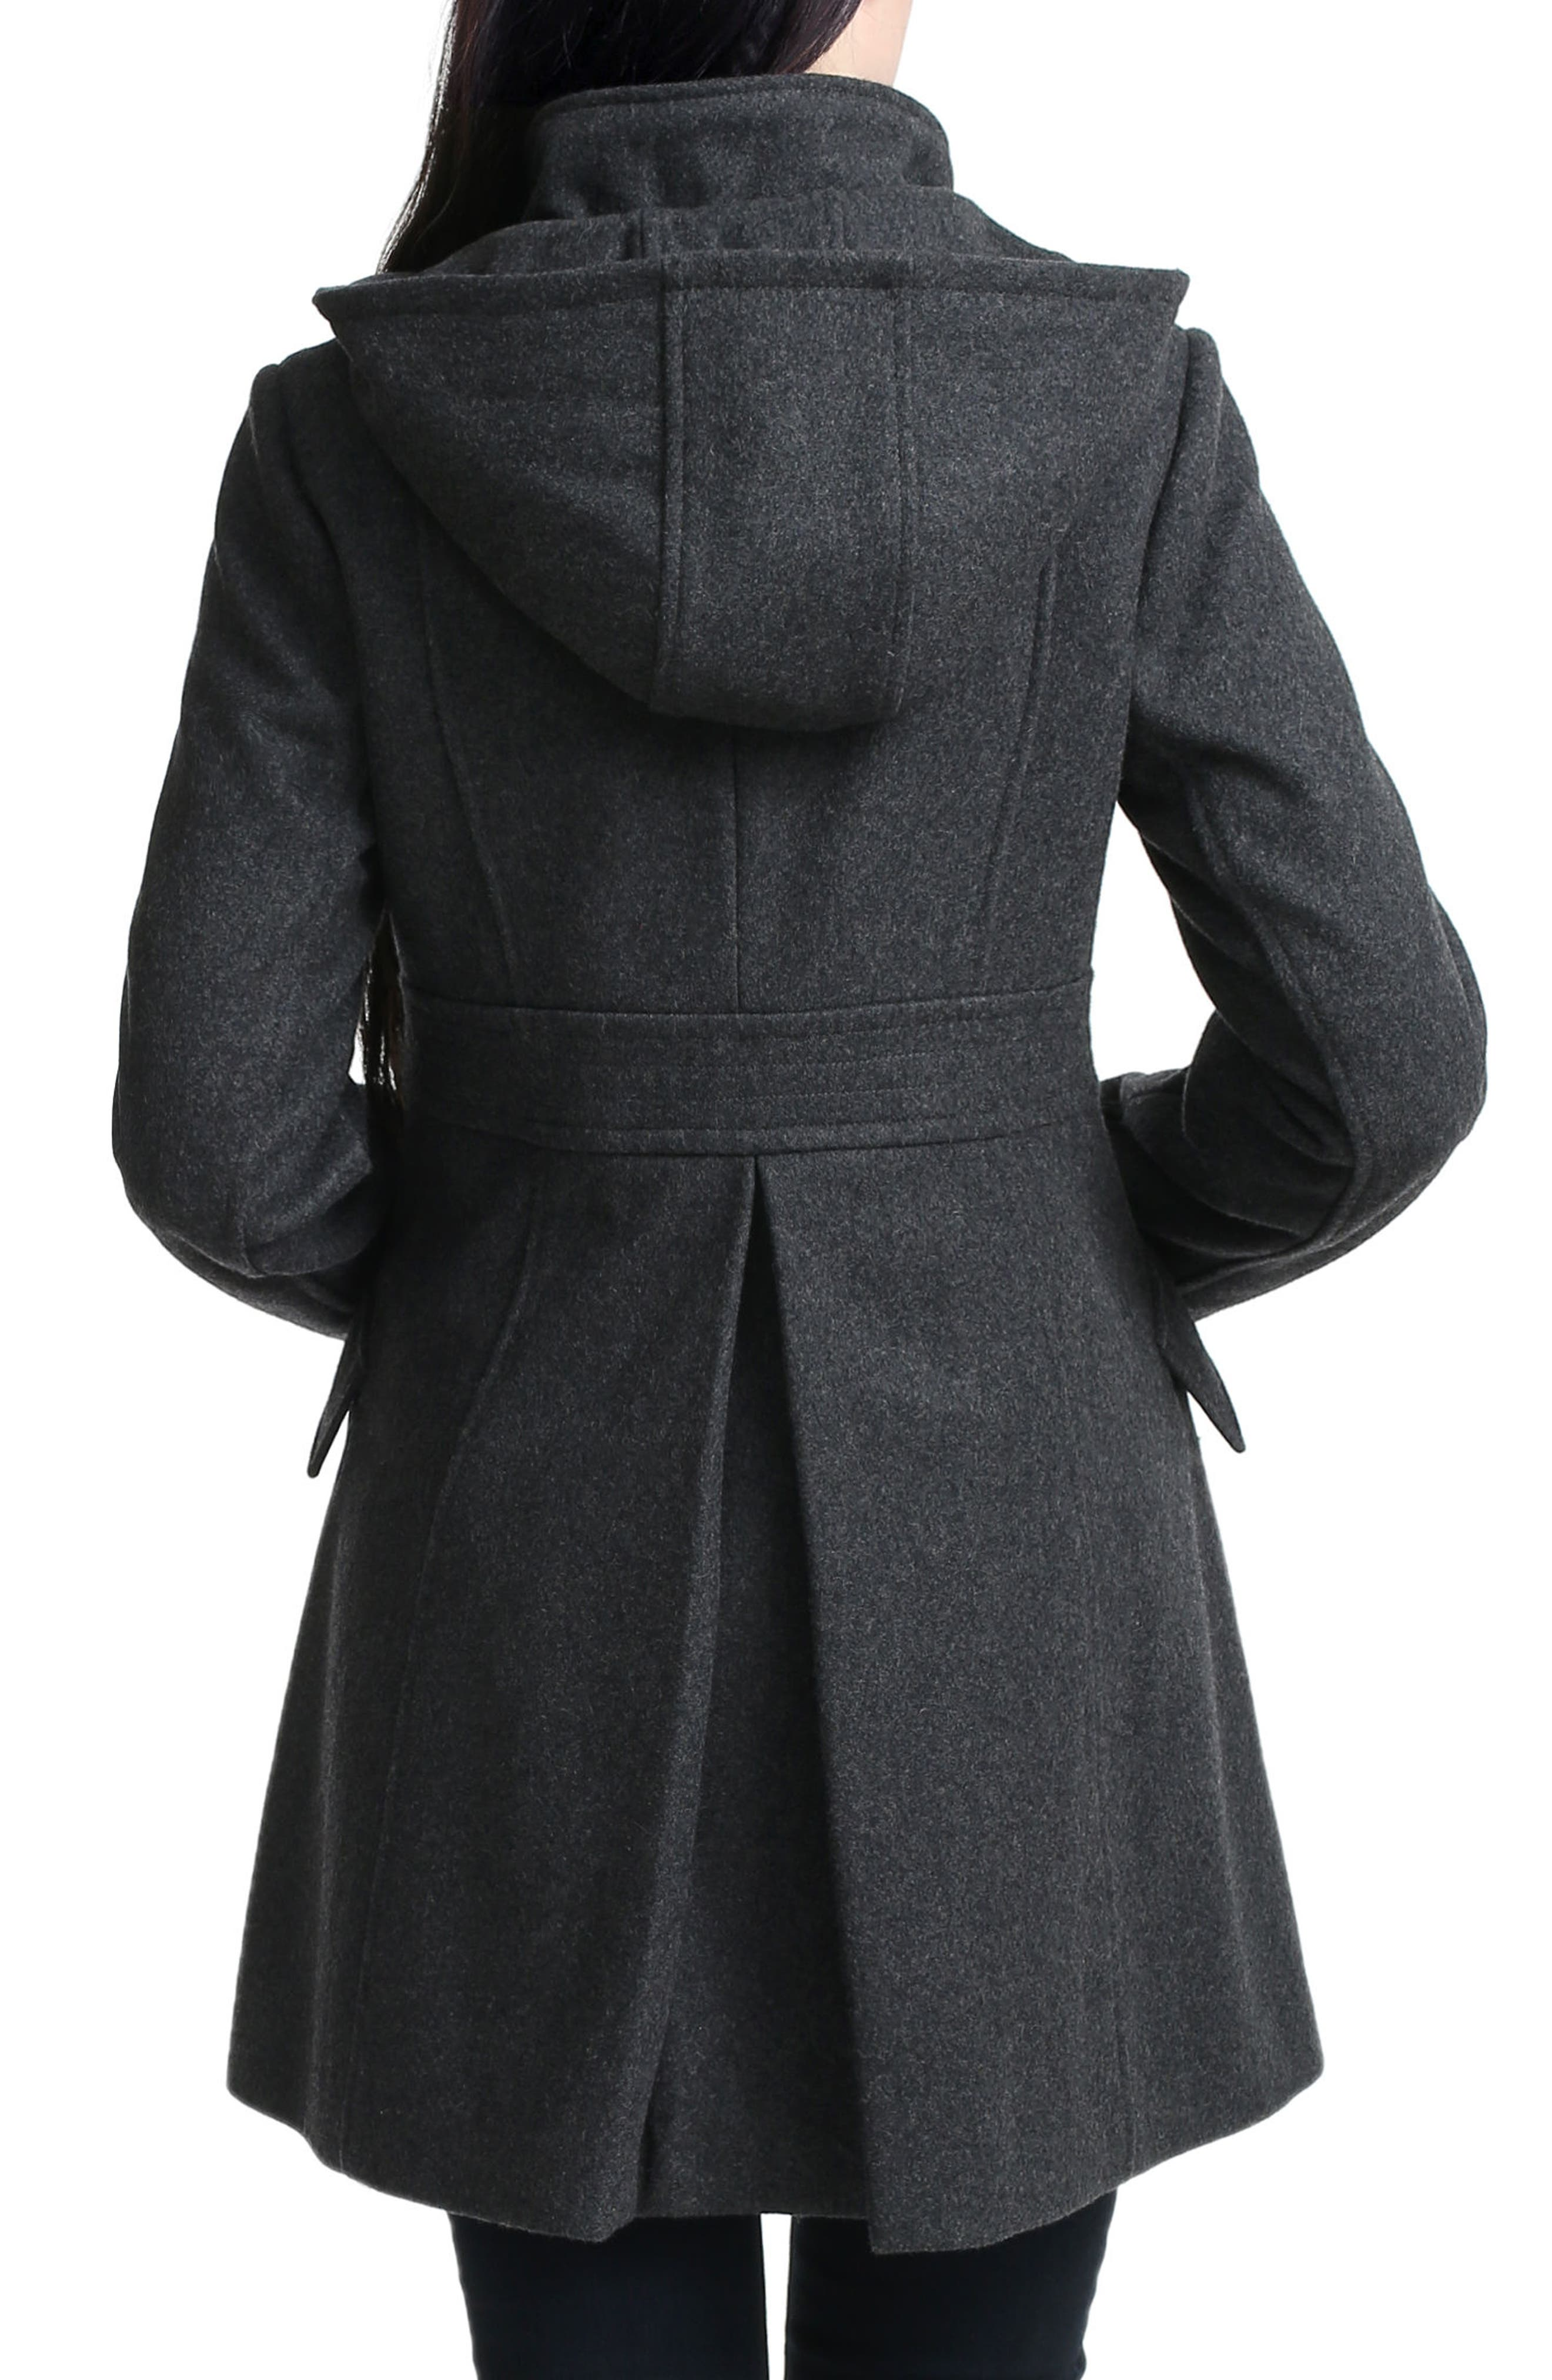 Cordella Wool Blend Hooded Maternity Coat,                             Alternate thumbnail 2, color,                             DARK HEATHER GRAY